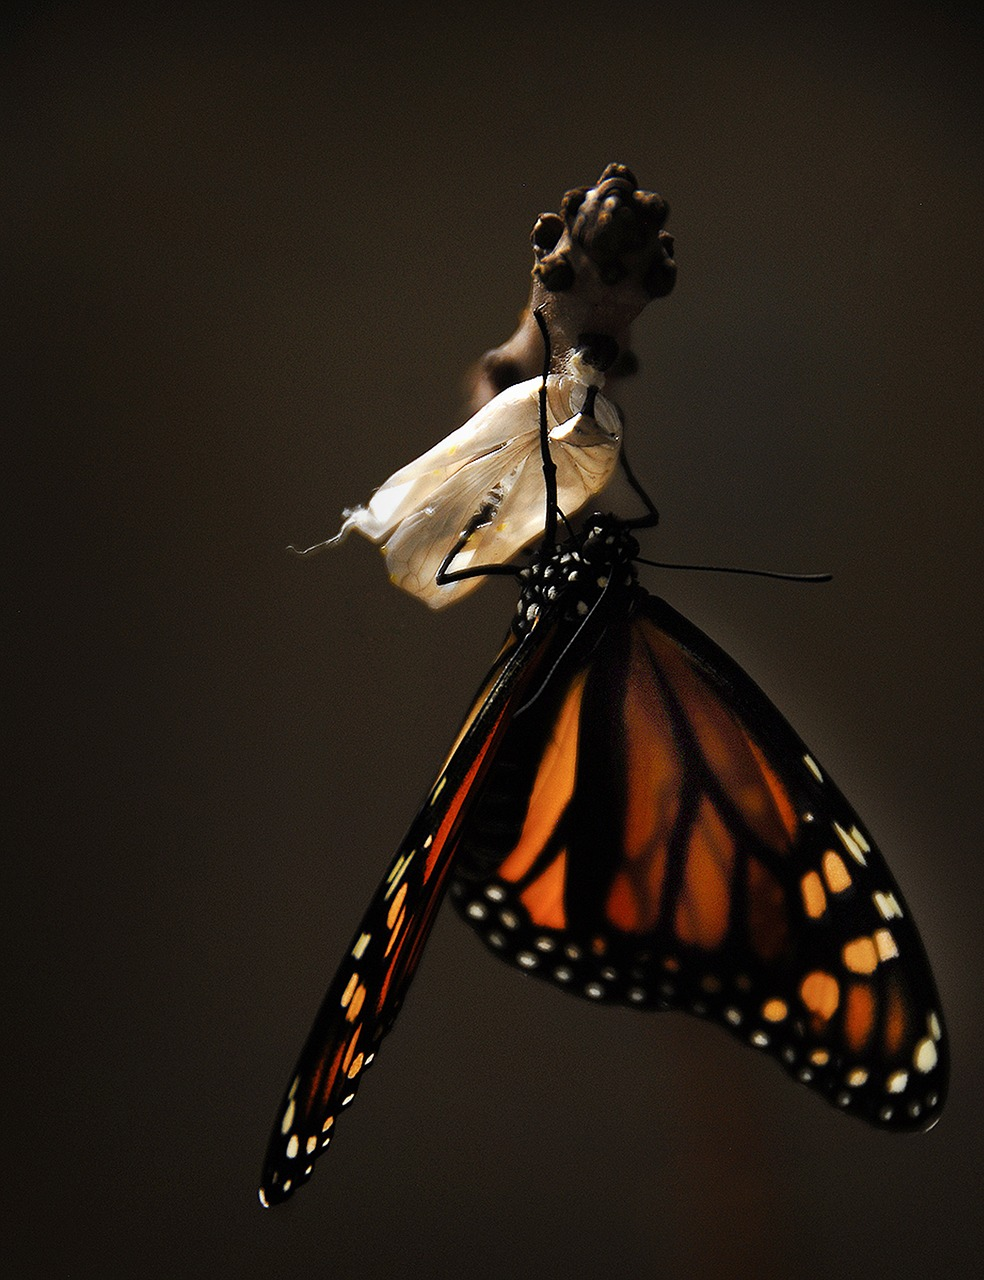 image of a butterfly to illustrate the Kaizen method